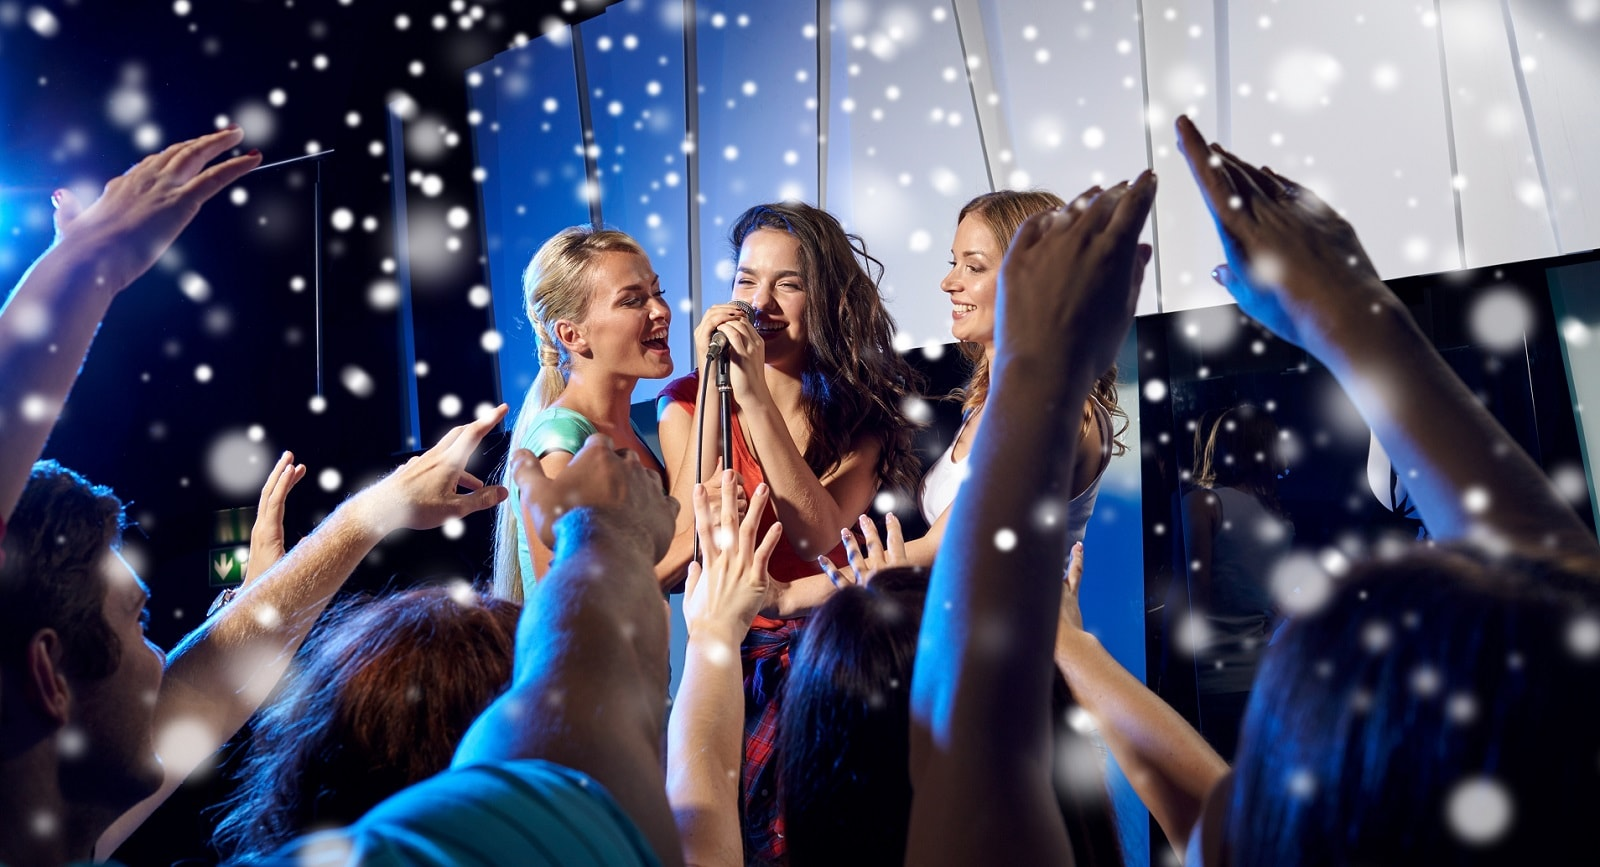 Club Event - Musical Night - EventBookings